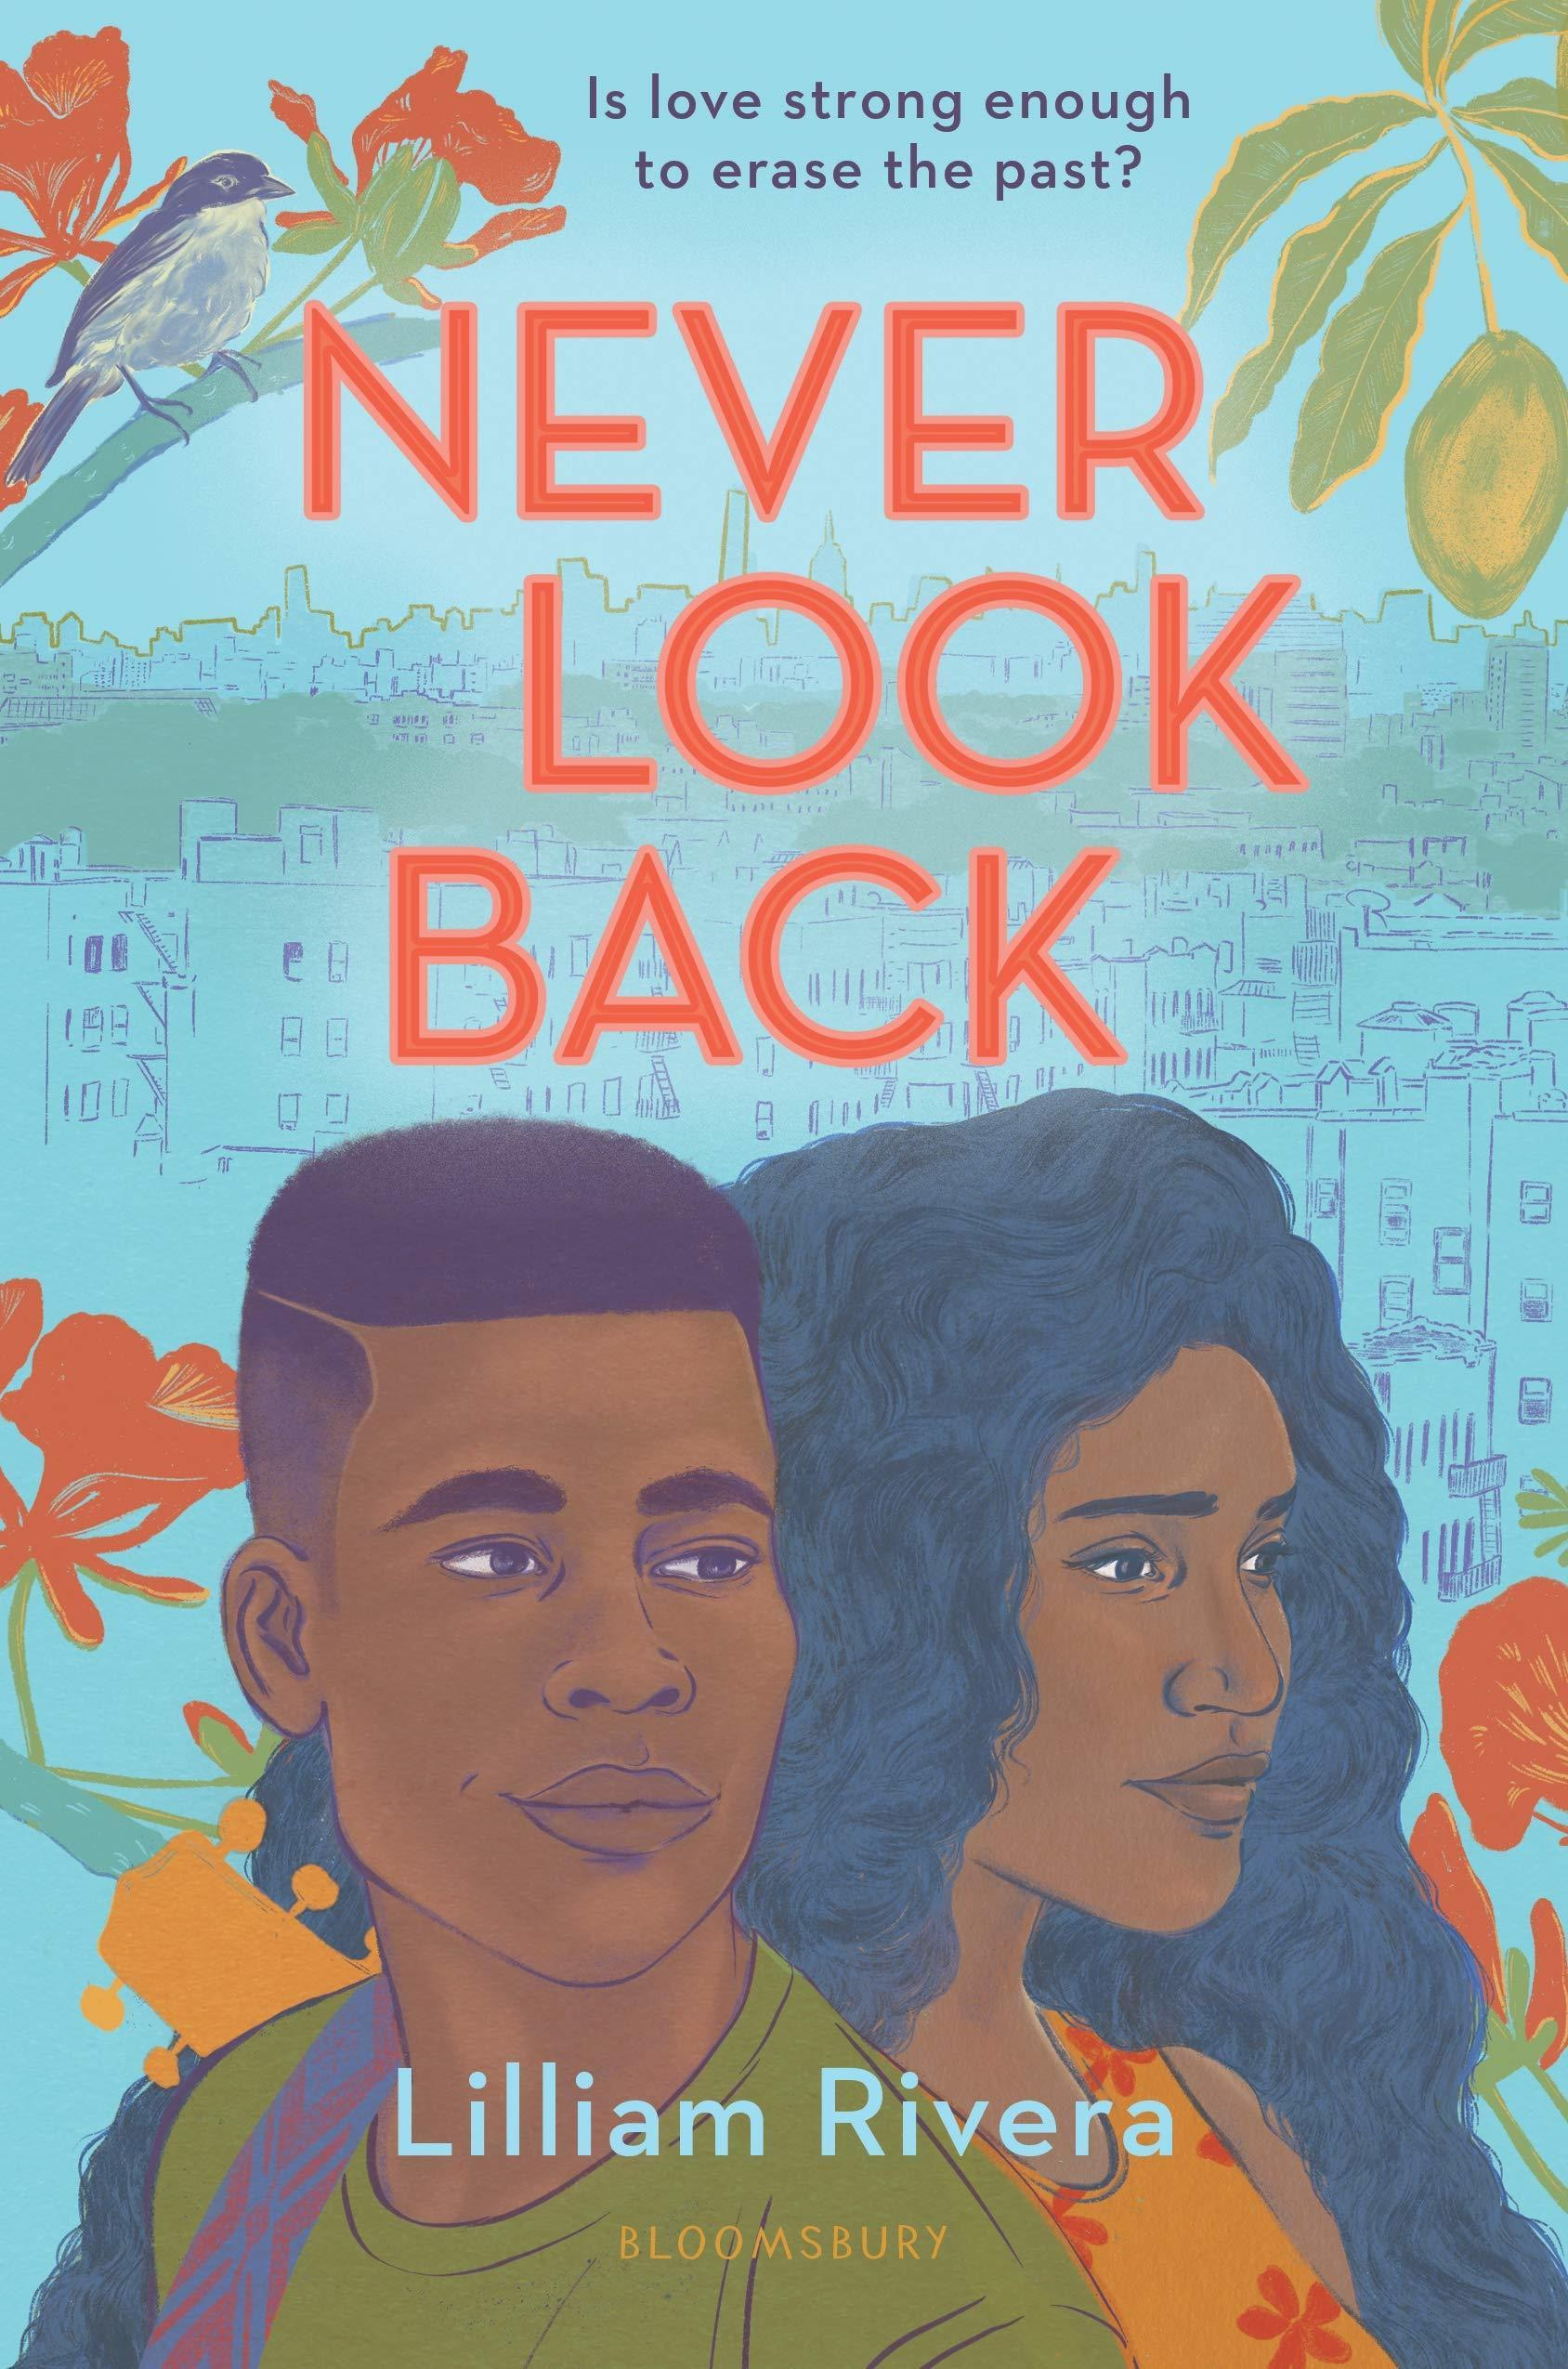 'Never Look Back' Updates An Ancient Story Of Love And Loss